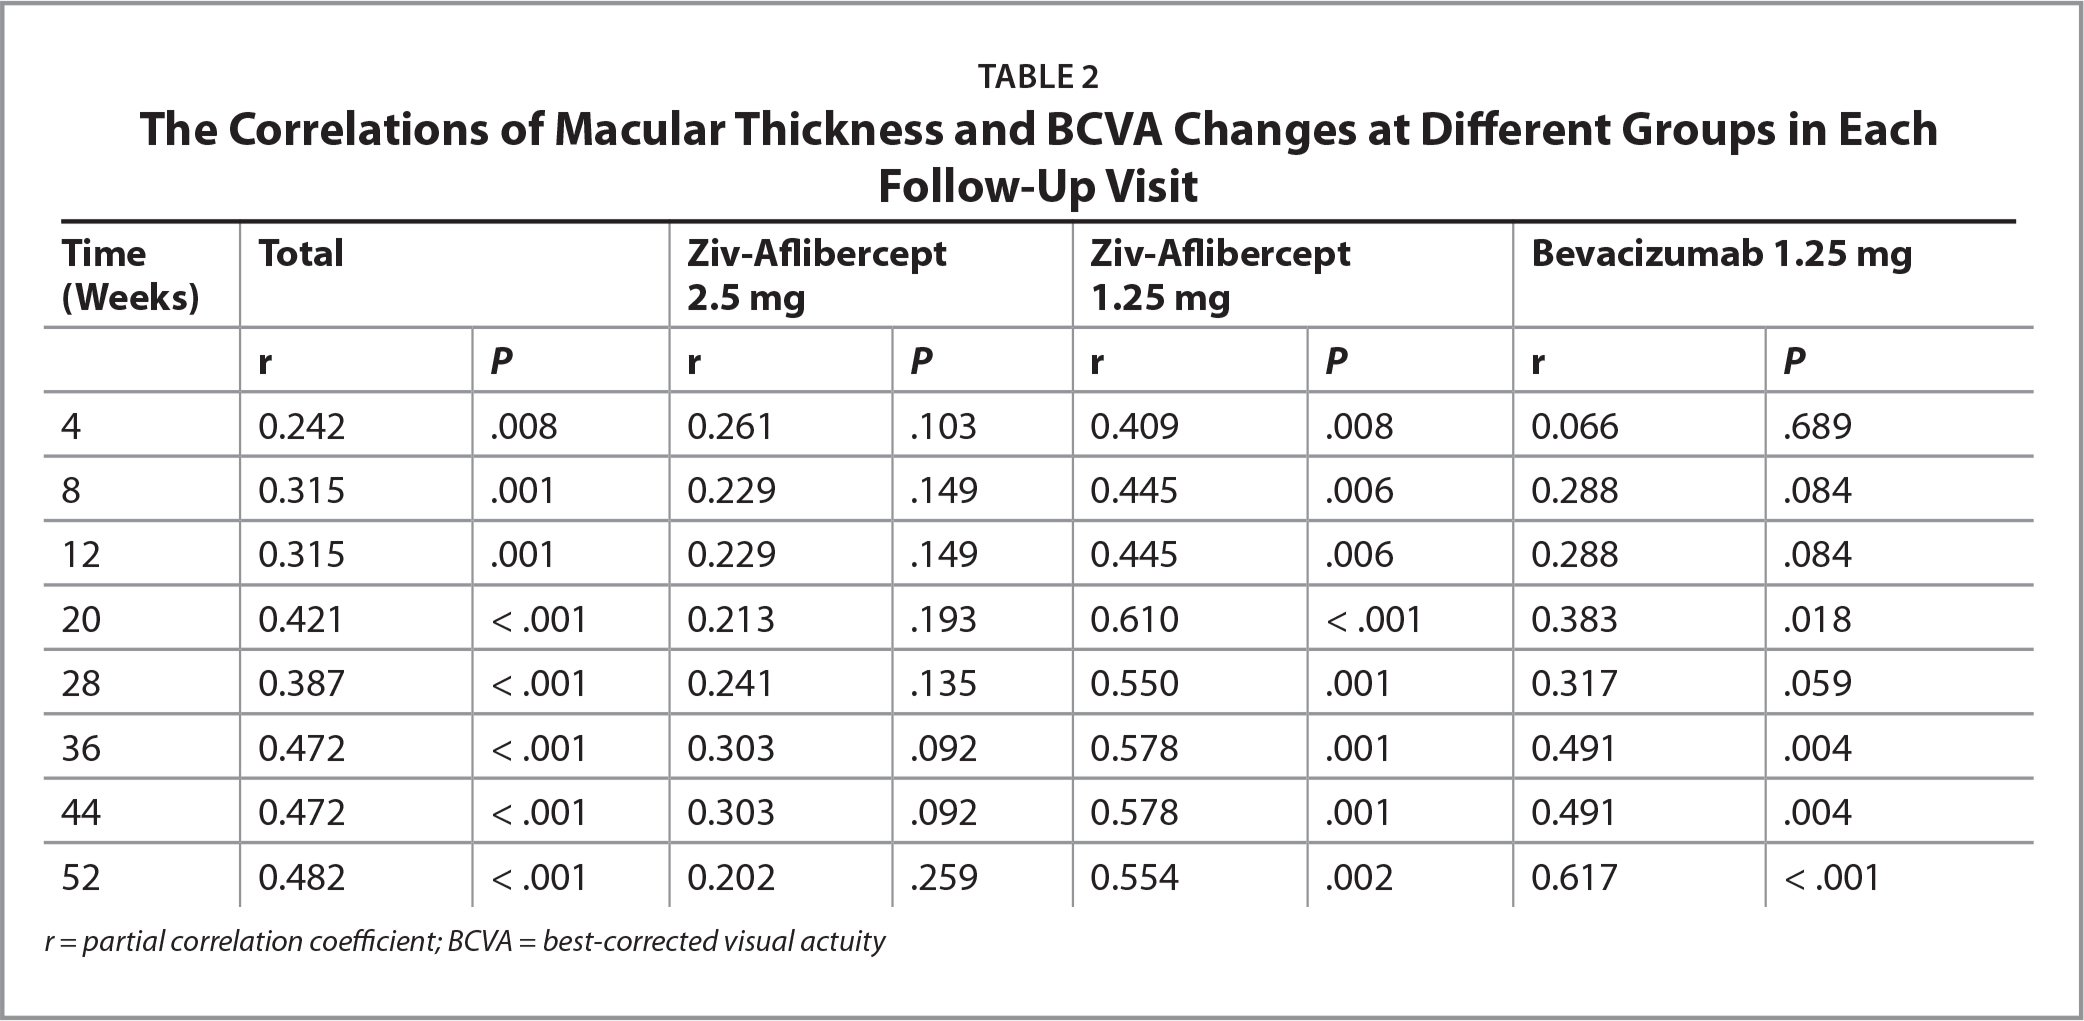 The Correlations of Macular Thickness and BCVA Changes at Different Groups in Each Follow-Up Visit